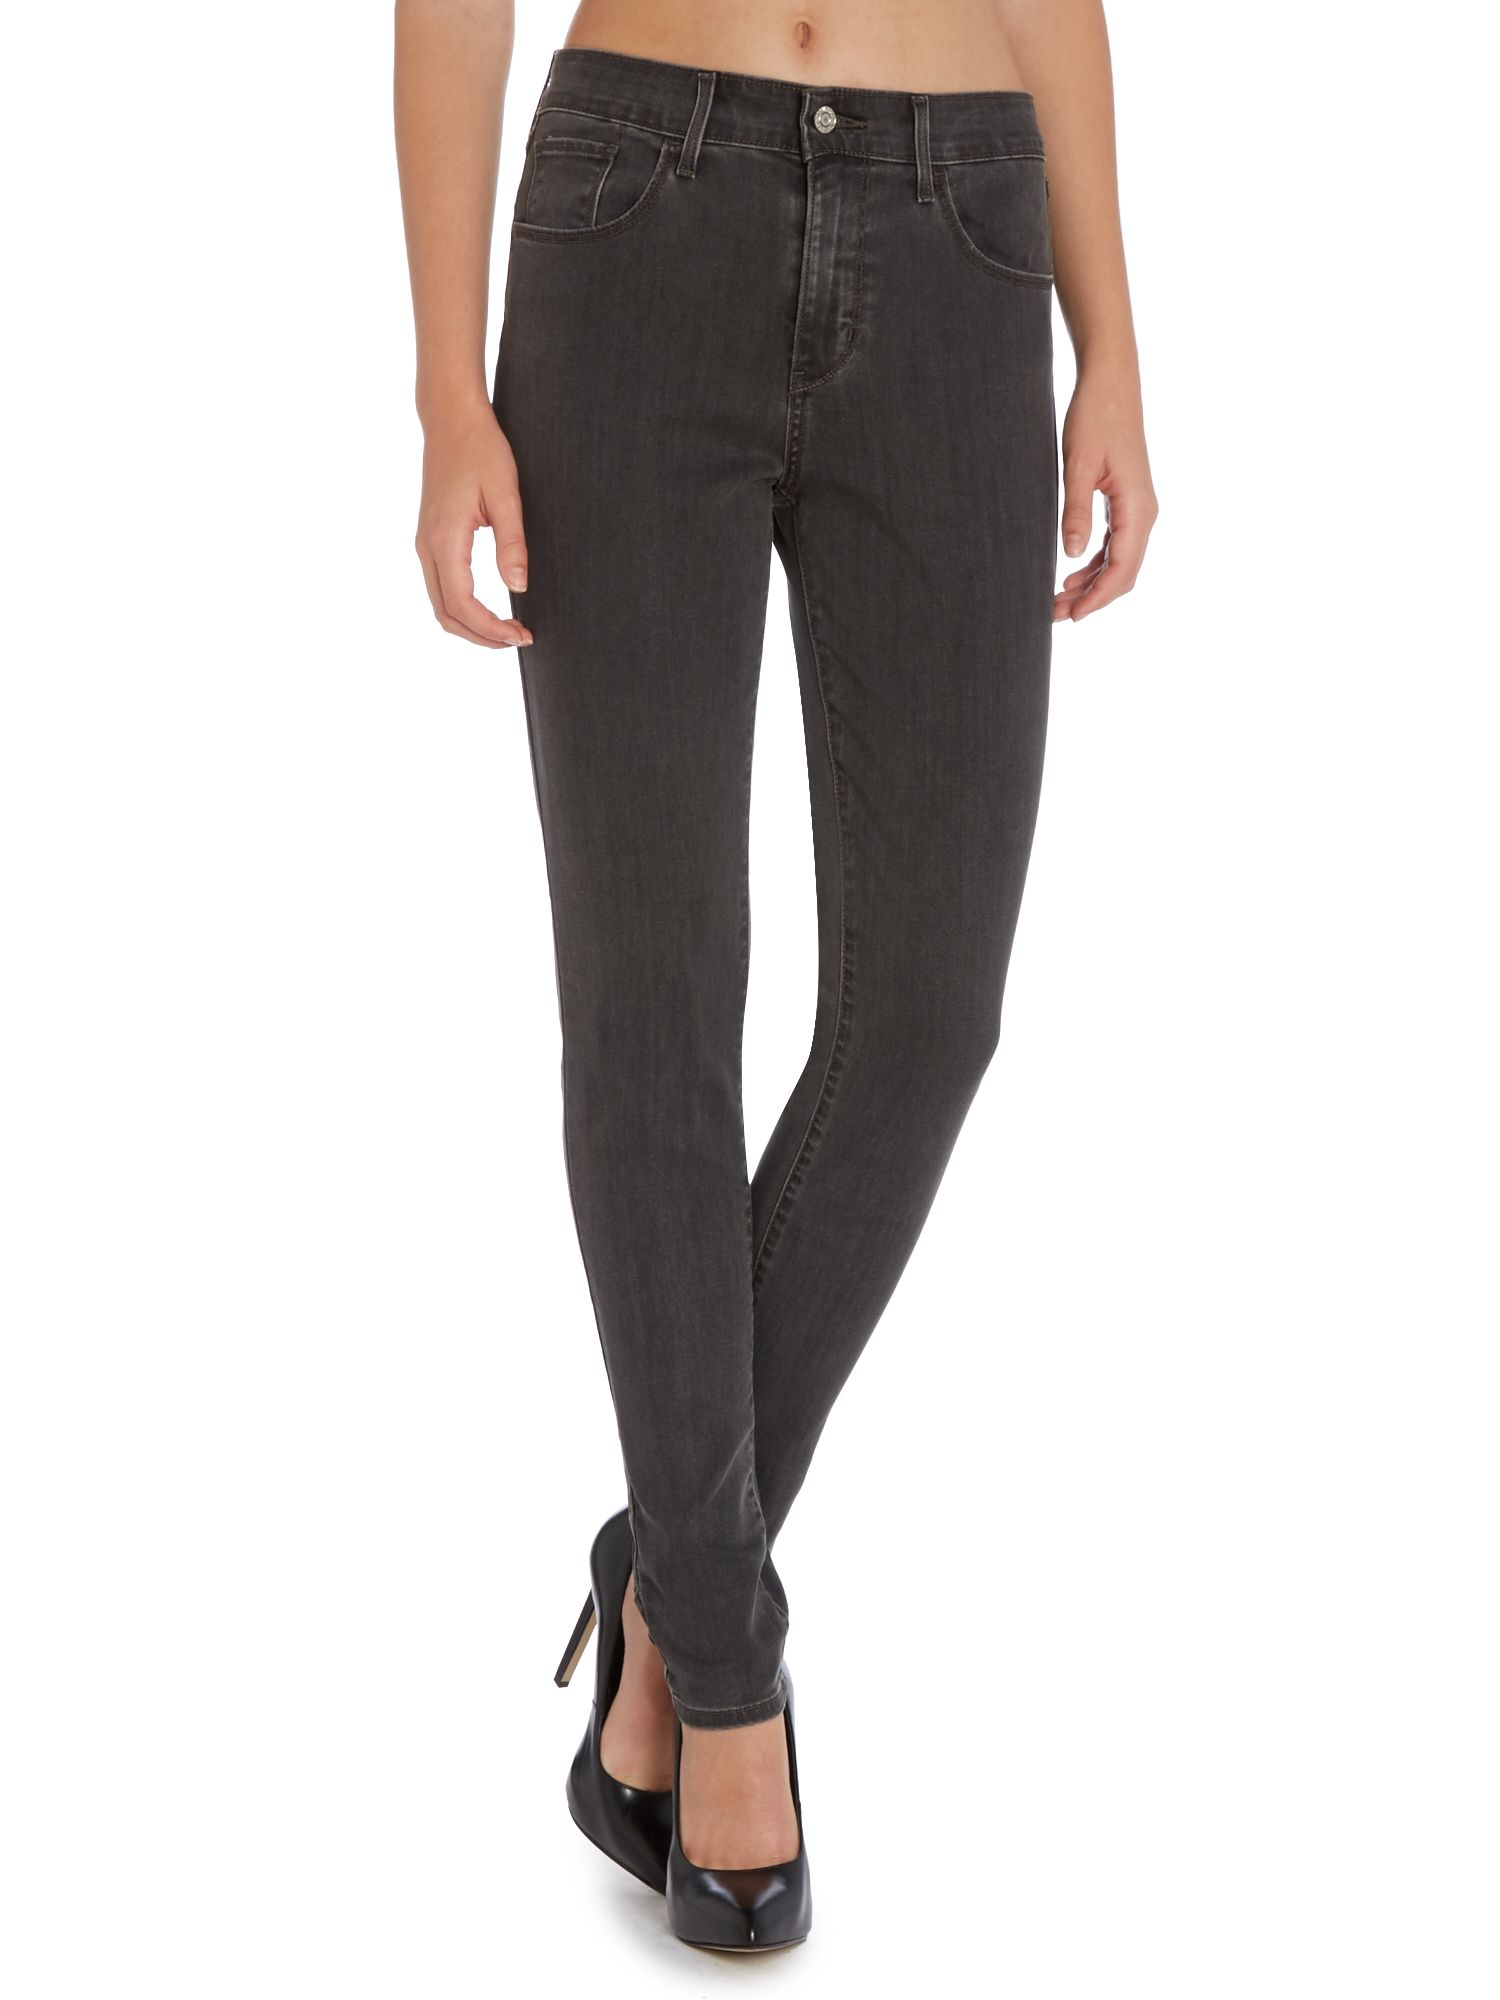 High rise skinny jeans in equinox